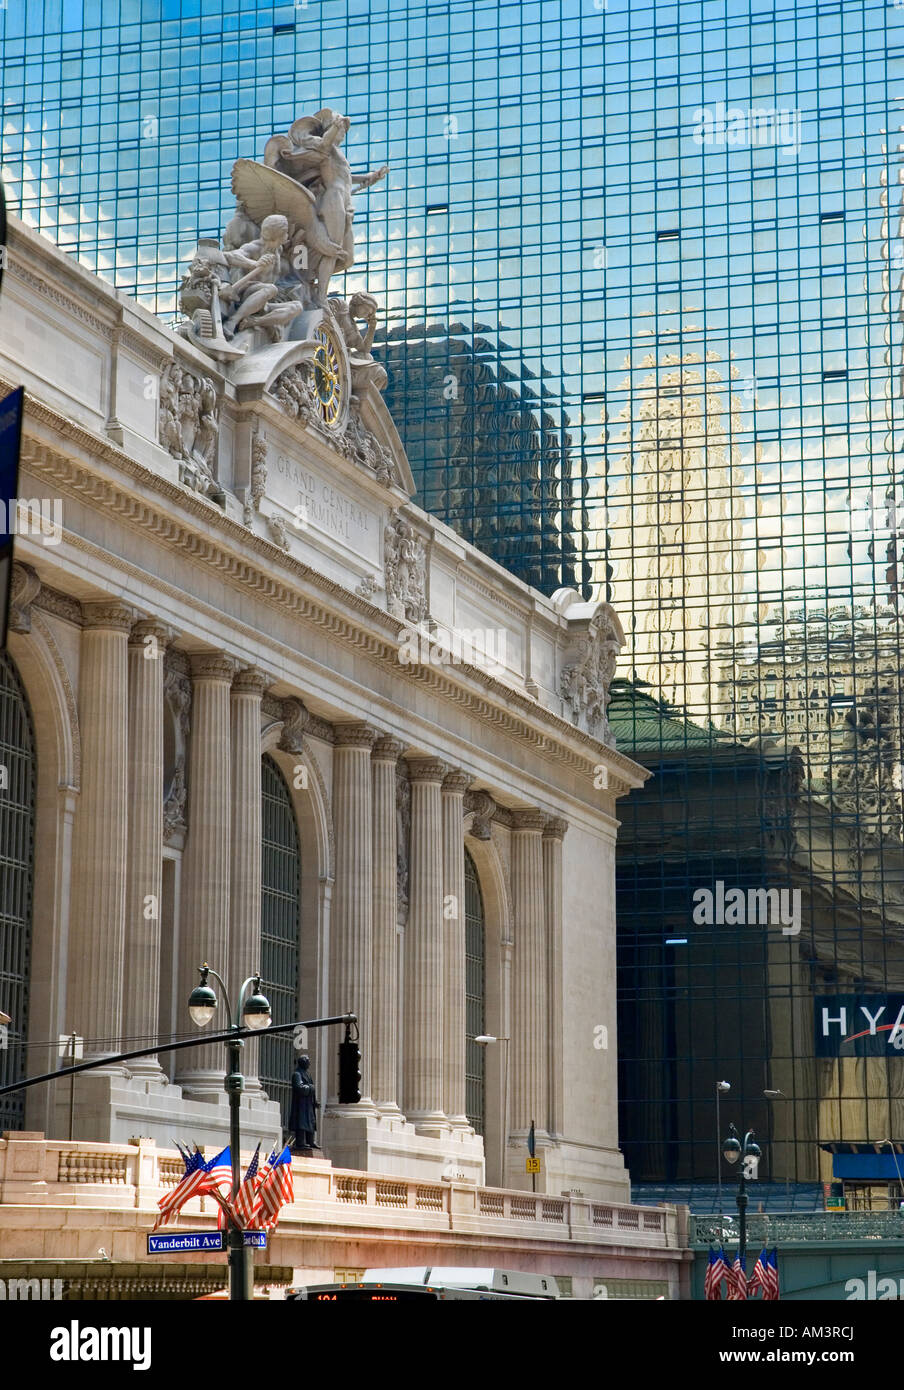 Grand Central Station with the Hyatt Hotel in New York City - Stock Image